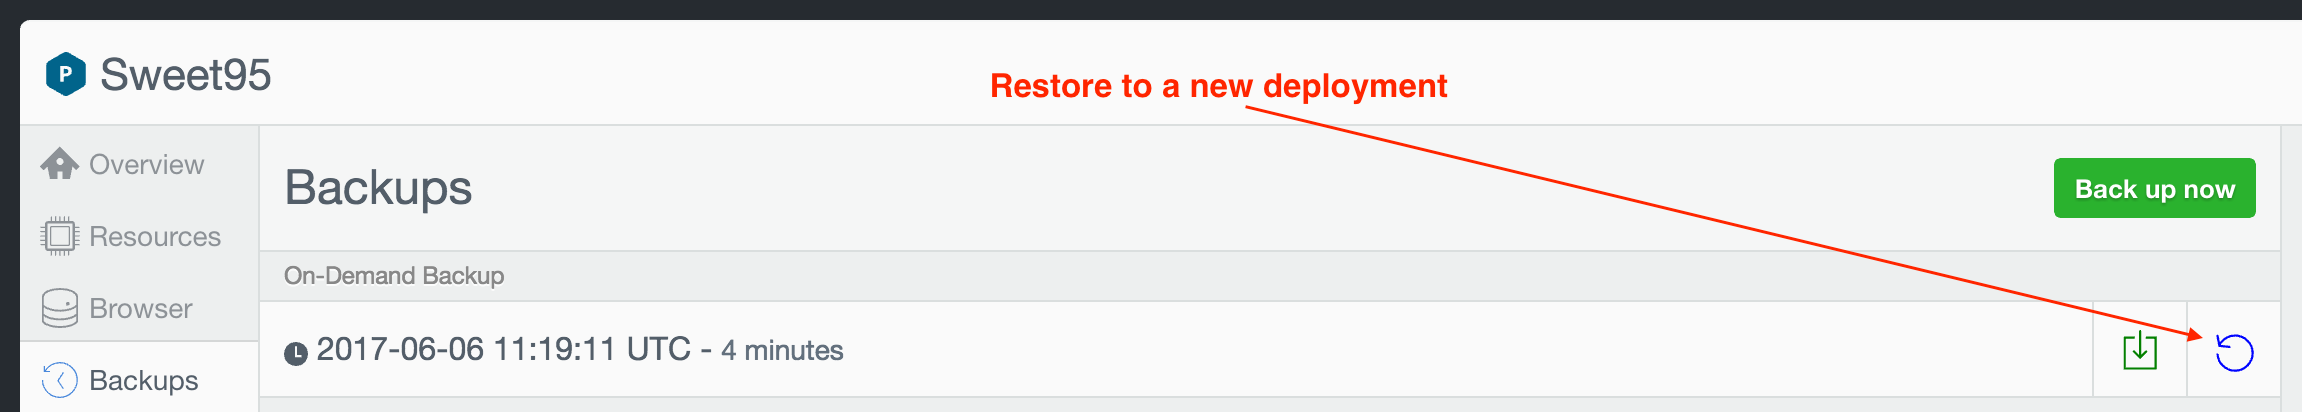 Restore to a new deployment